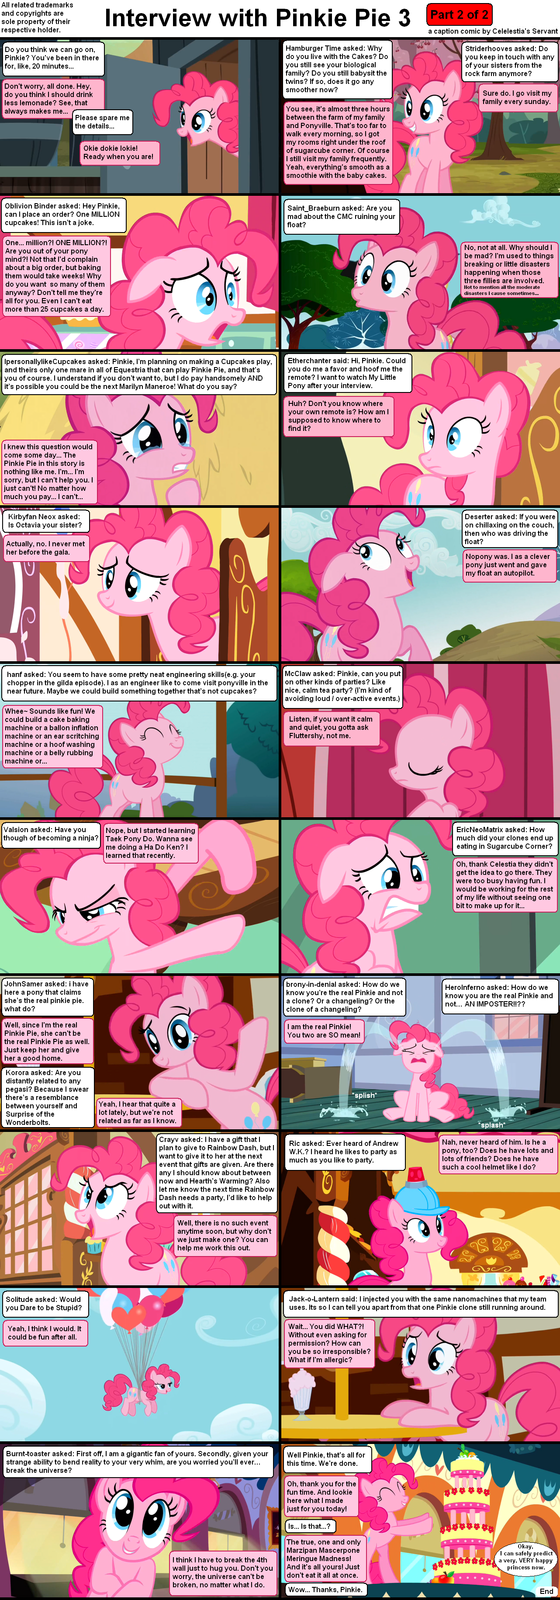 Interview with Pinkie Pie 3